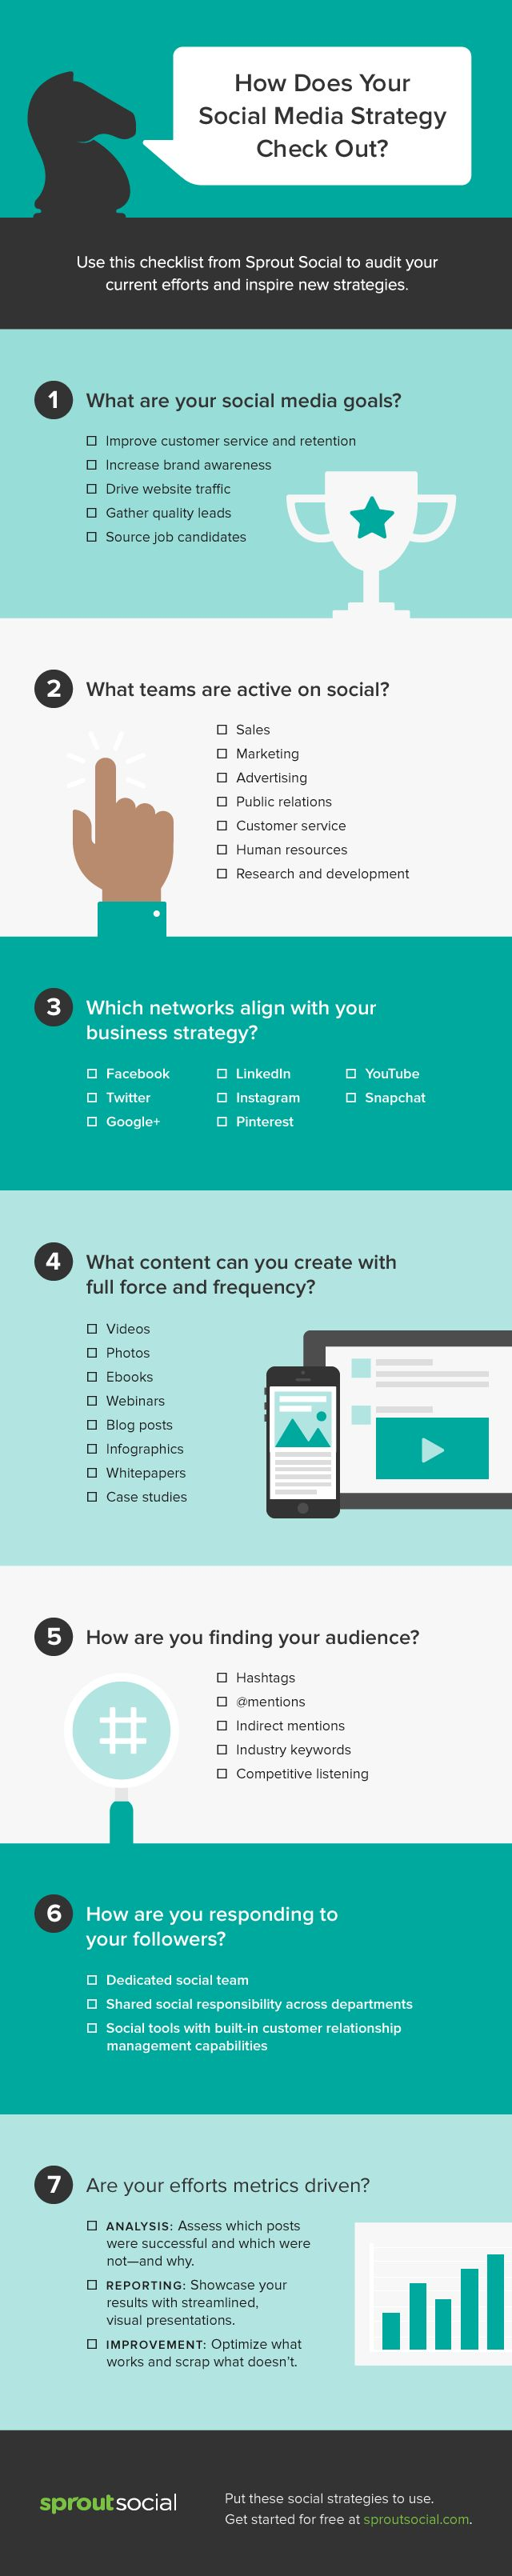 A quick checklist that walks you through 7-steps to creating an effective social media marketing strategy.